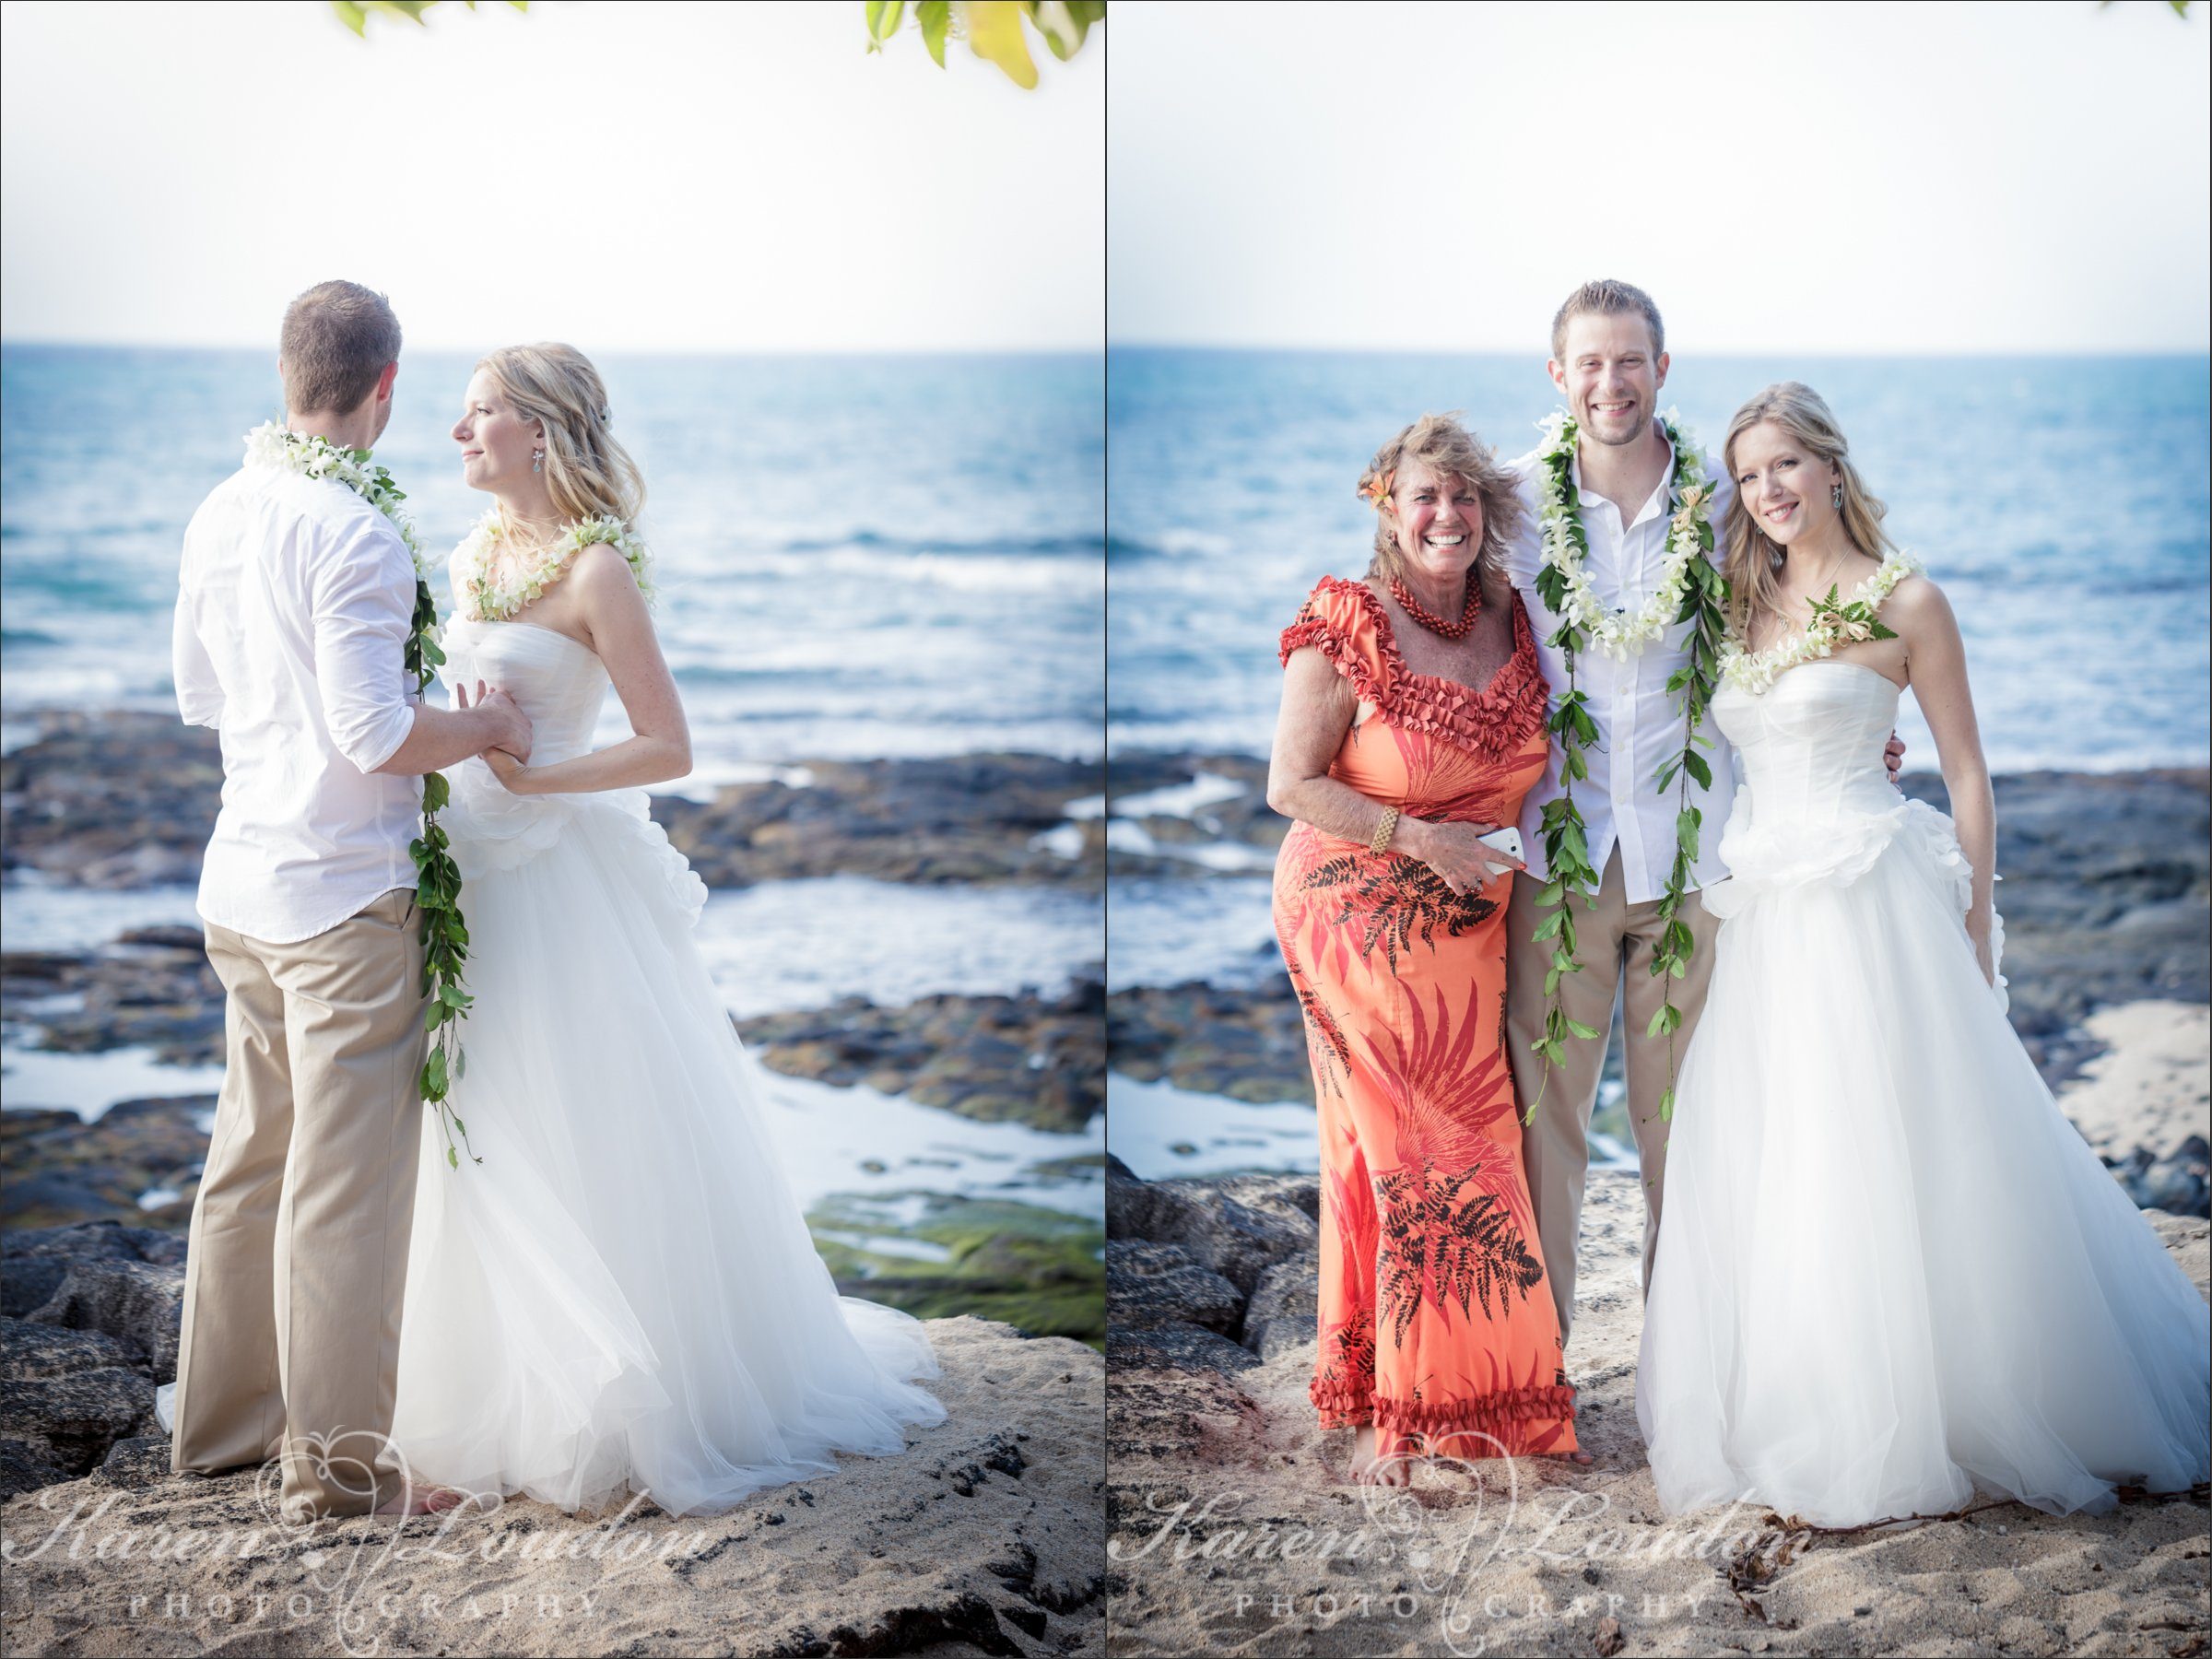 Kukio Beach Big Island Hawaii Wedding Ceremony